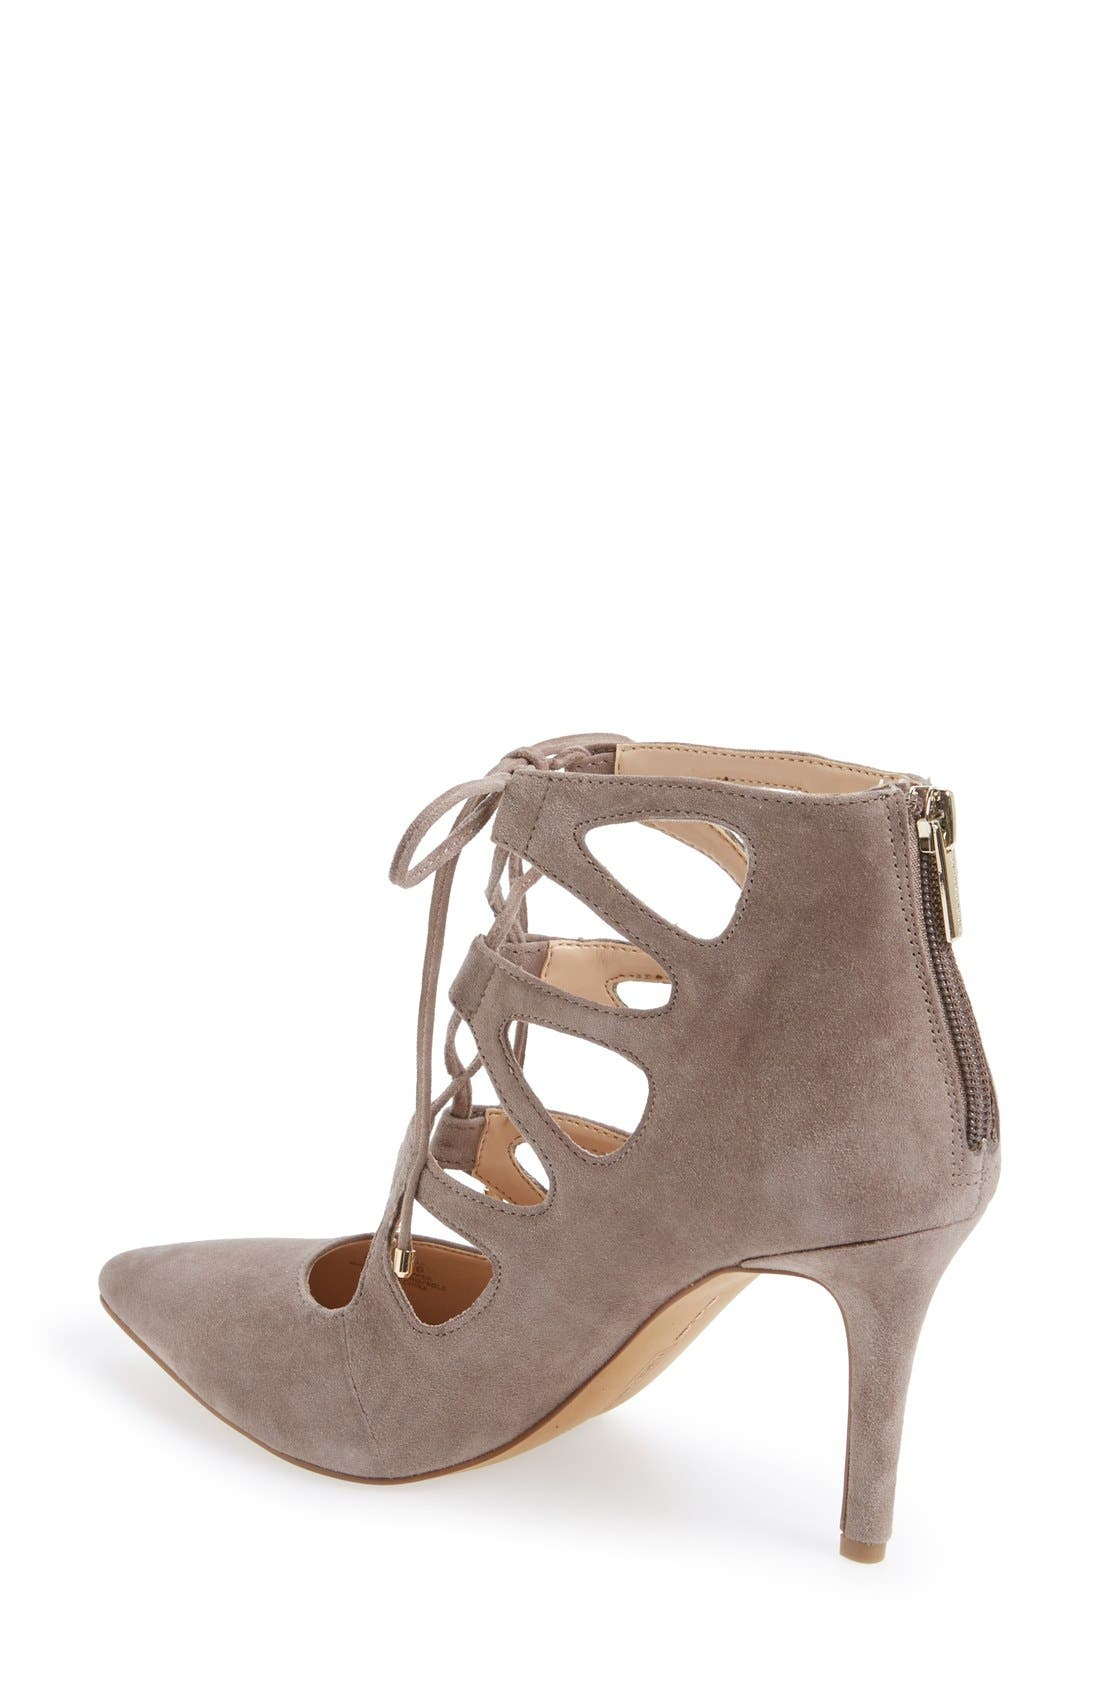 'Bodell' Lace Up Pump,                             Alternate thumbnail 13, color,